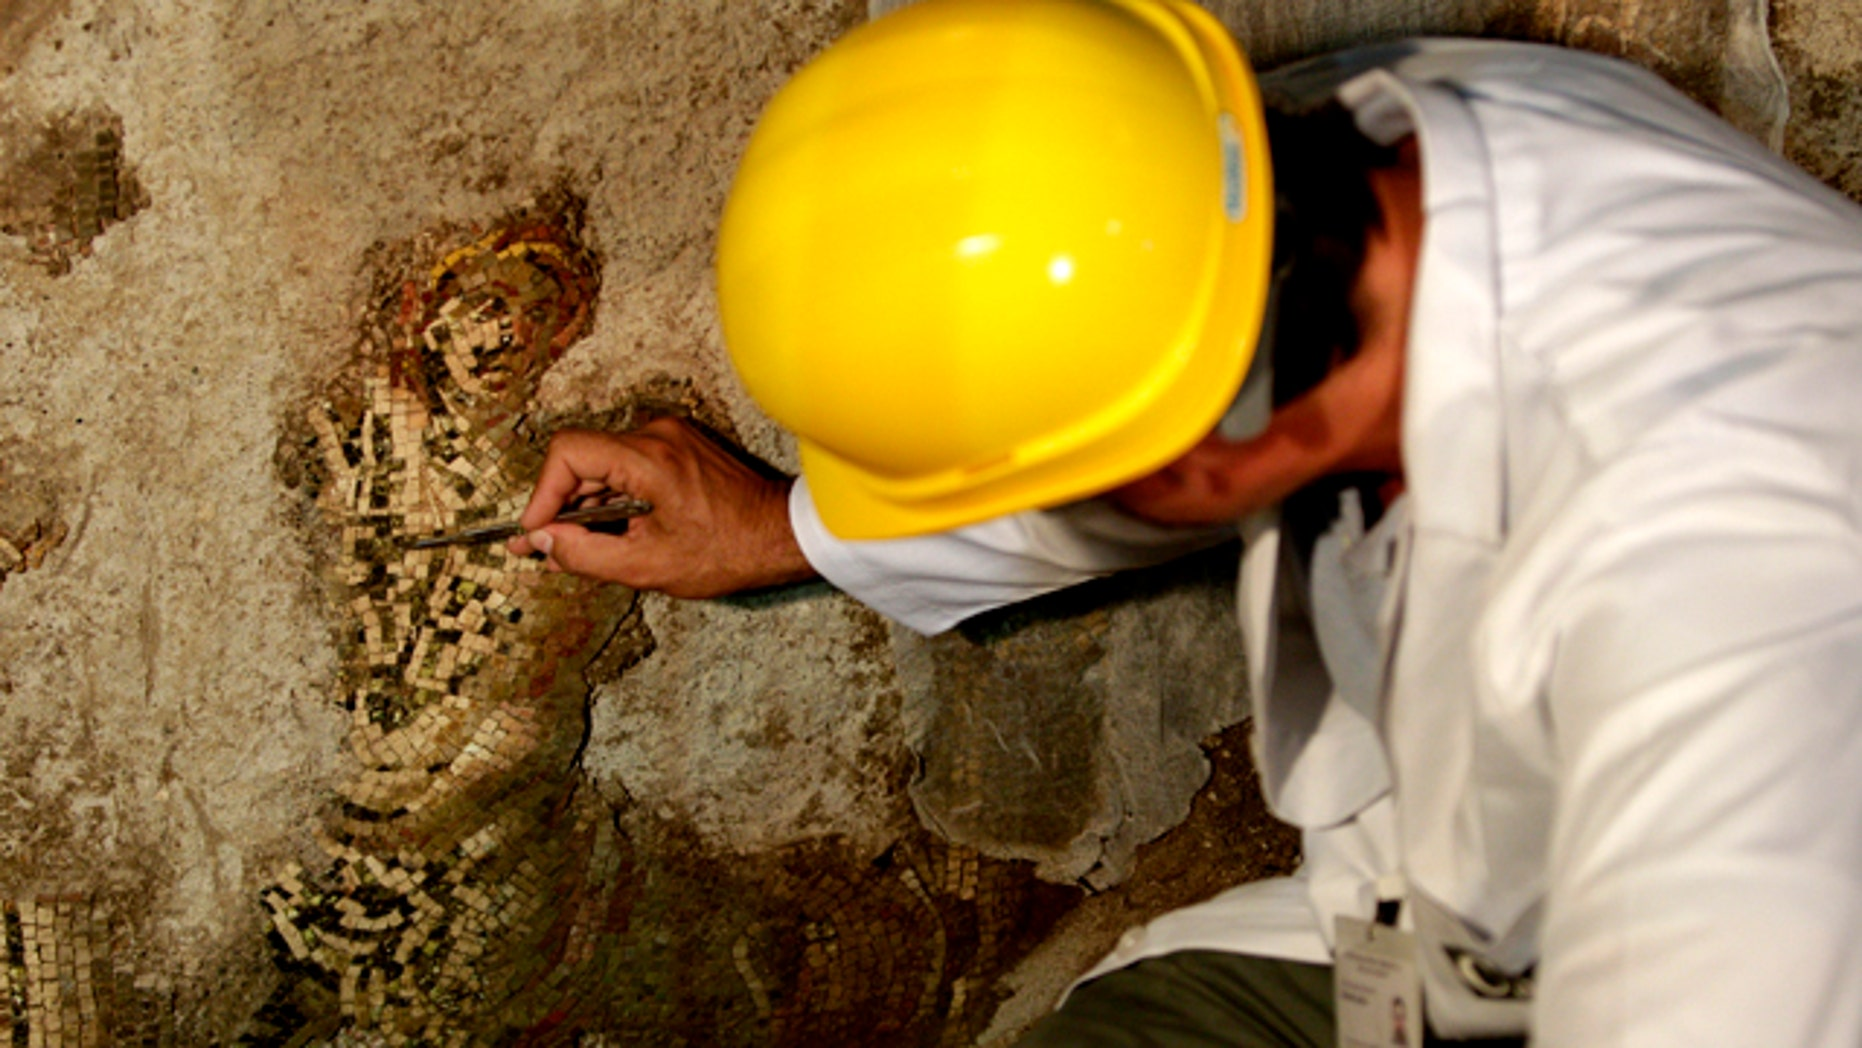 July 29, 2011: An archaeologist works on a portrait of a Centaur, part of a mosaic discovered in downtown Rome following excavations in the bowels of an ancient hill.